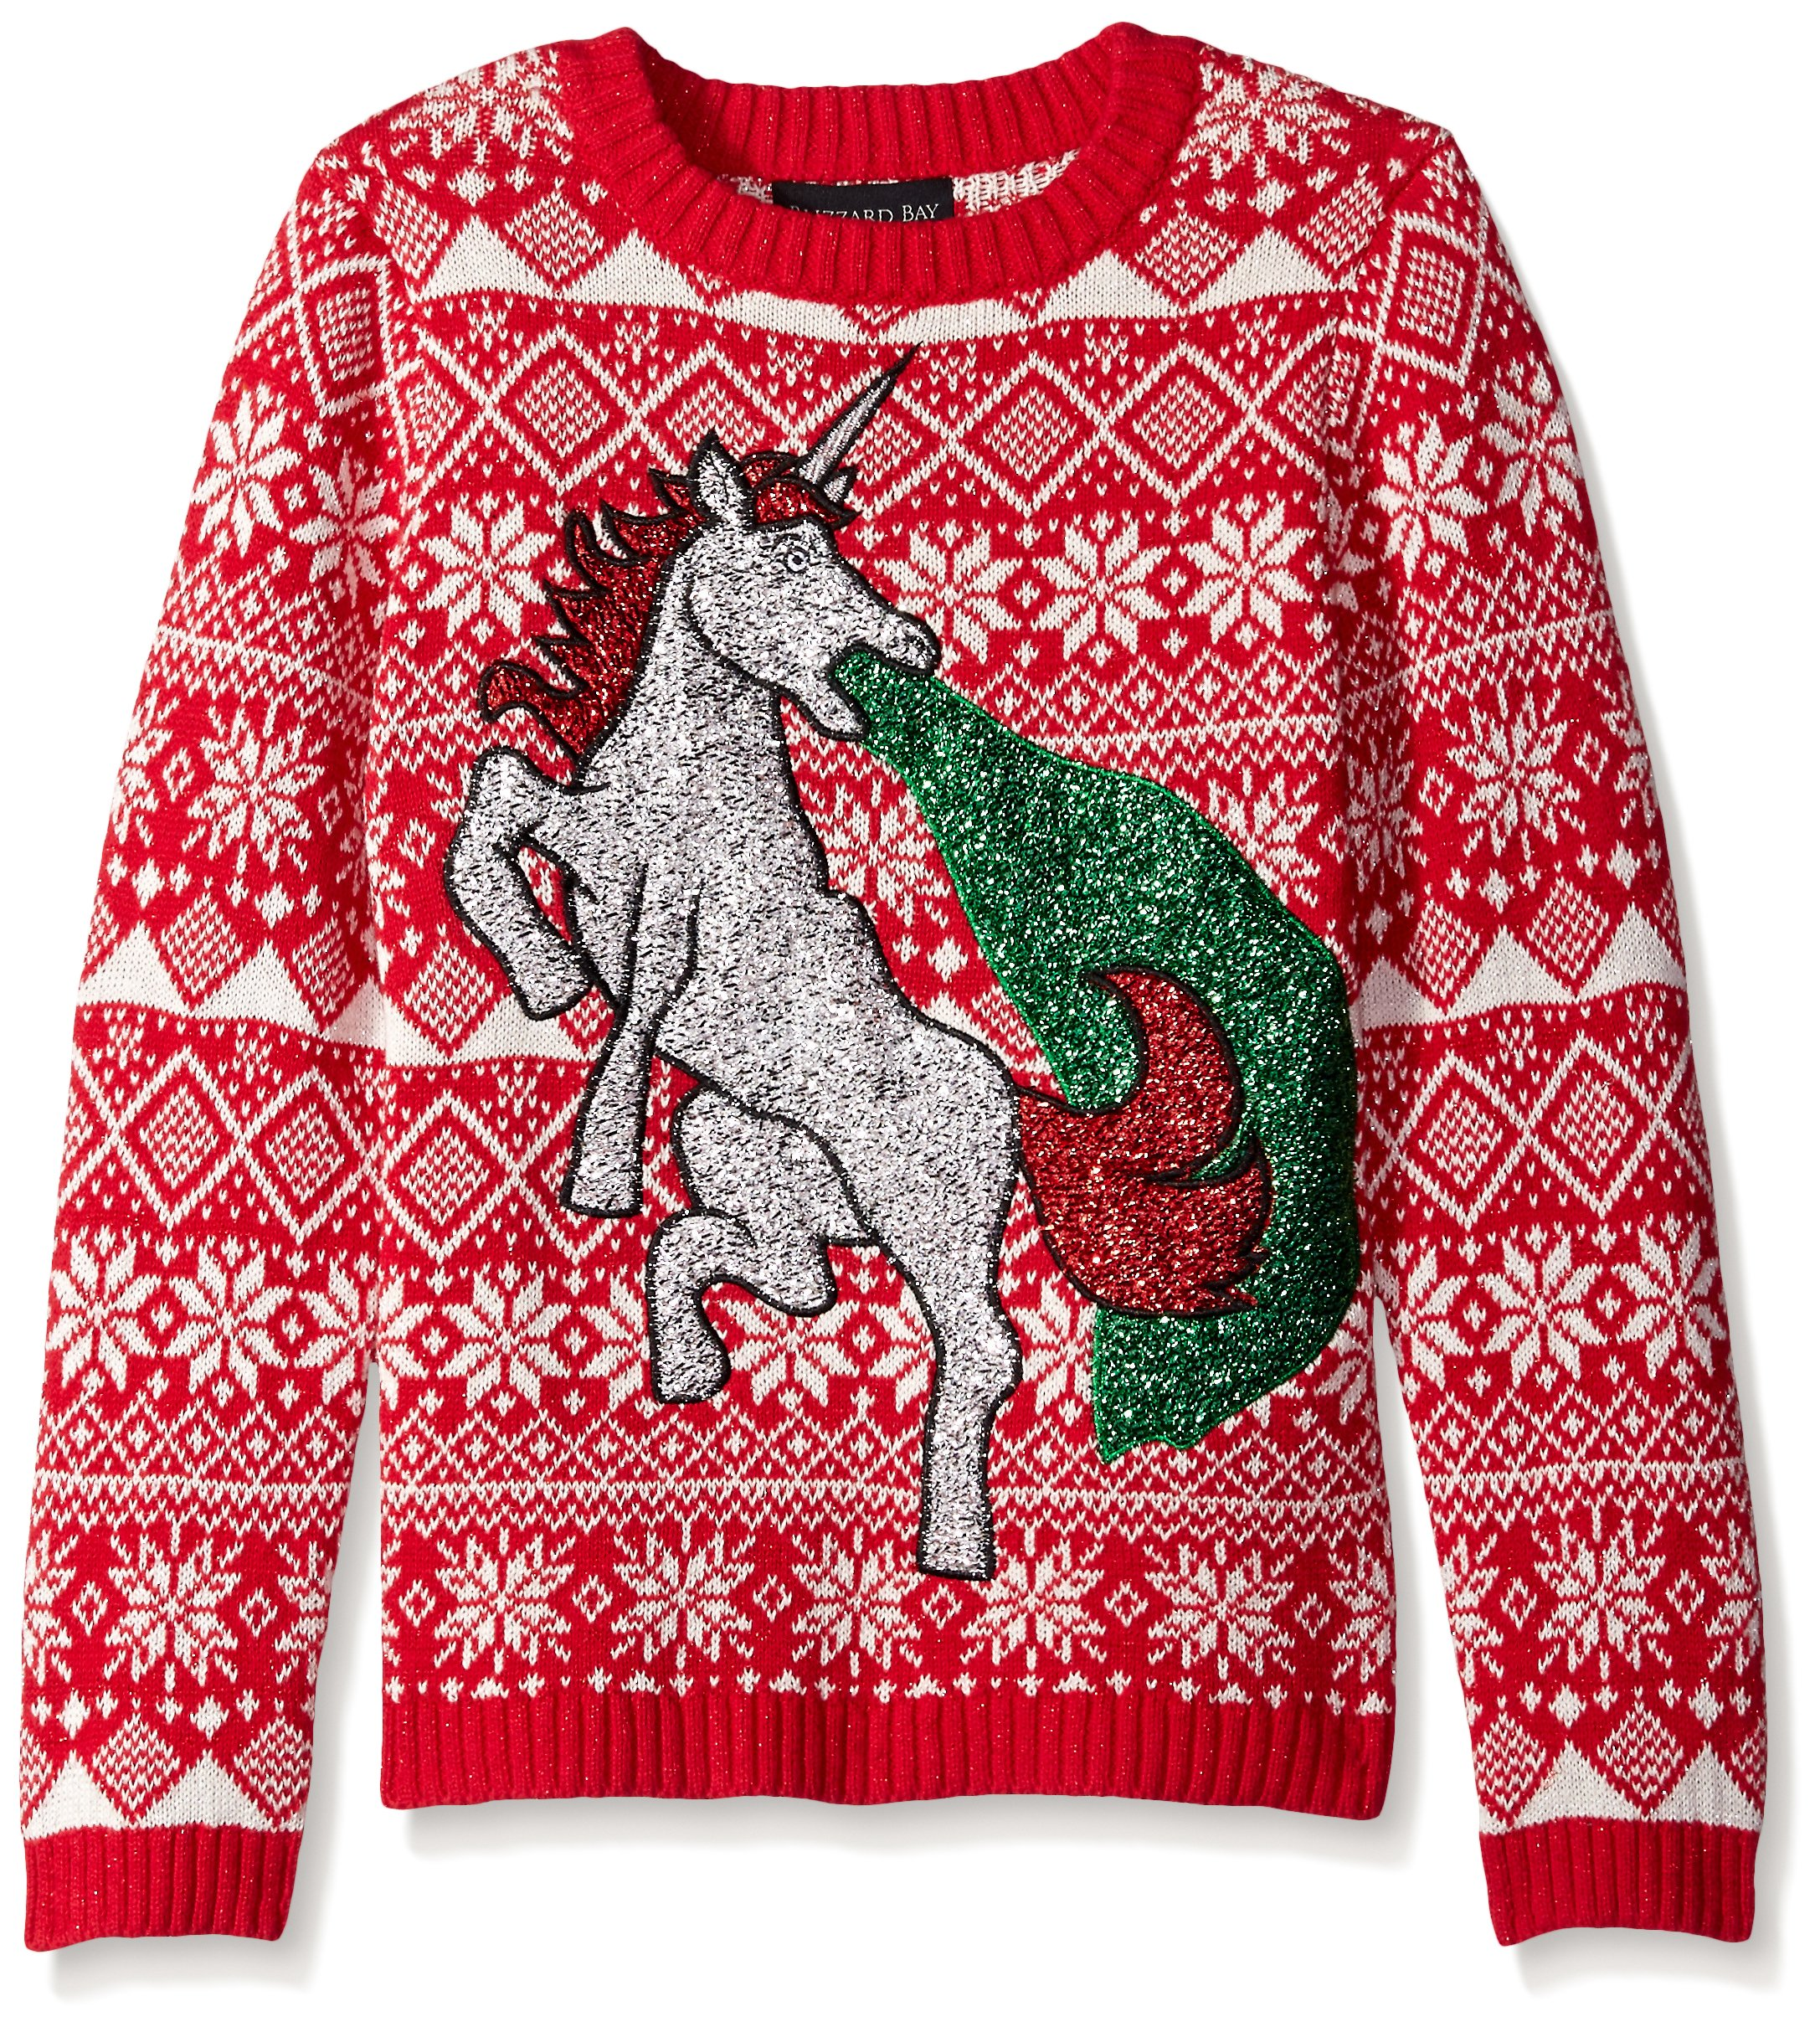 blizzard bay boys glitter vomit unicorn sweater - Ugly Christmas Sweater Amazon